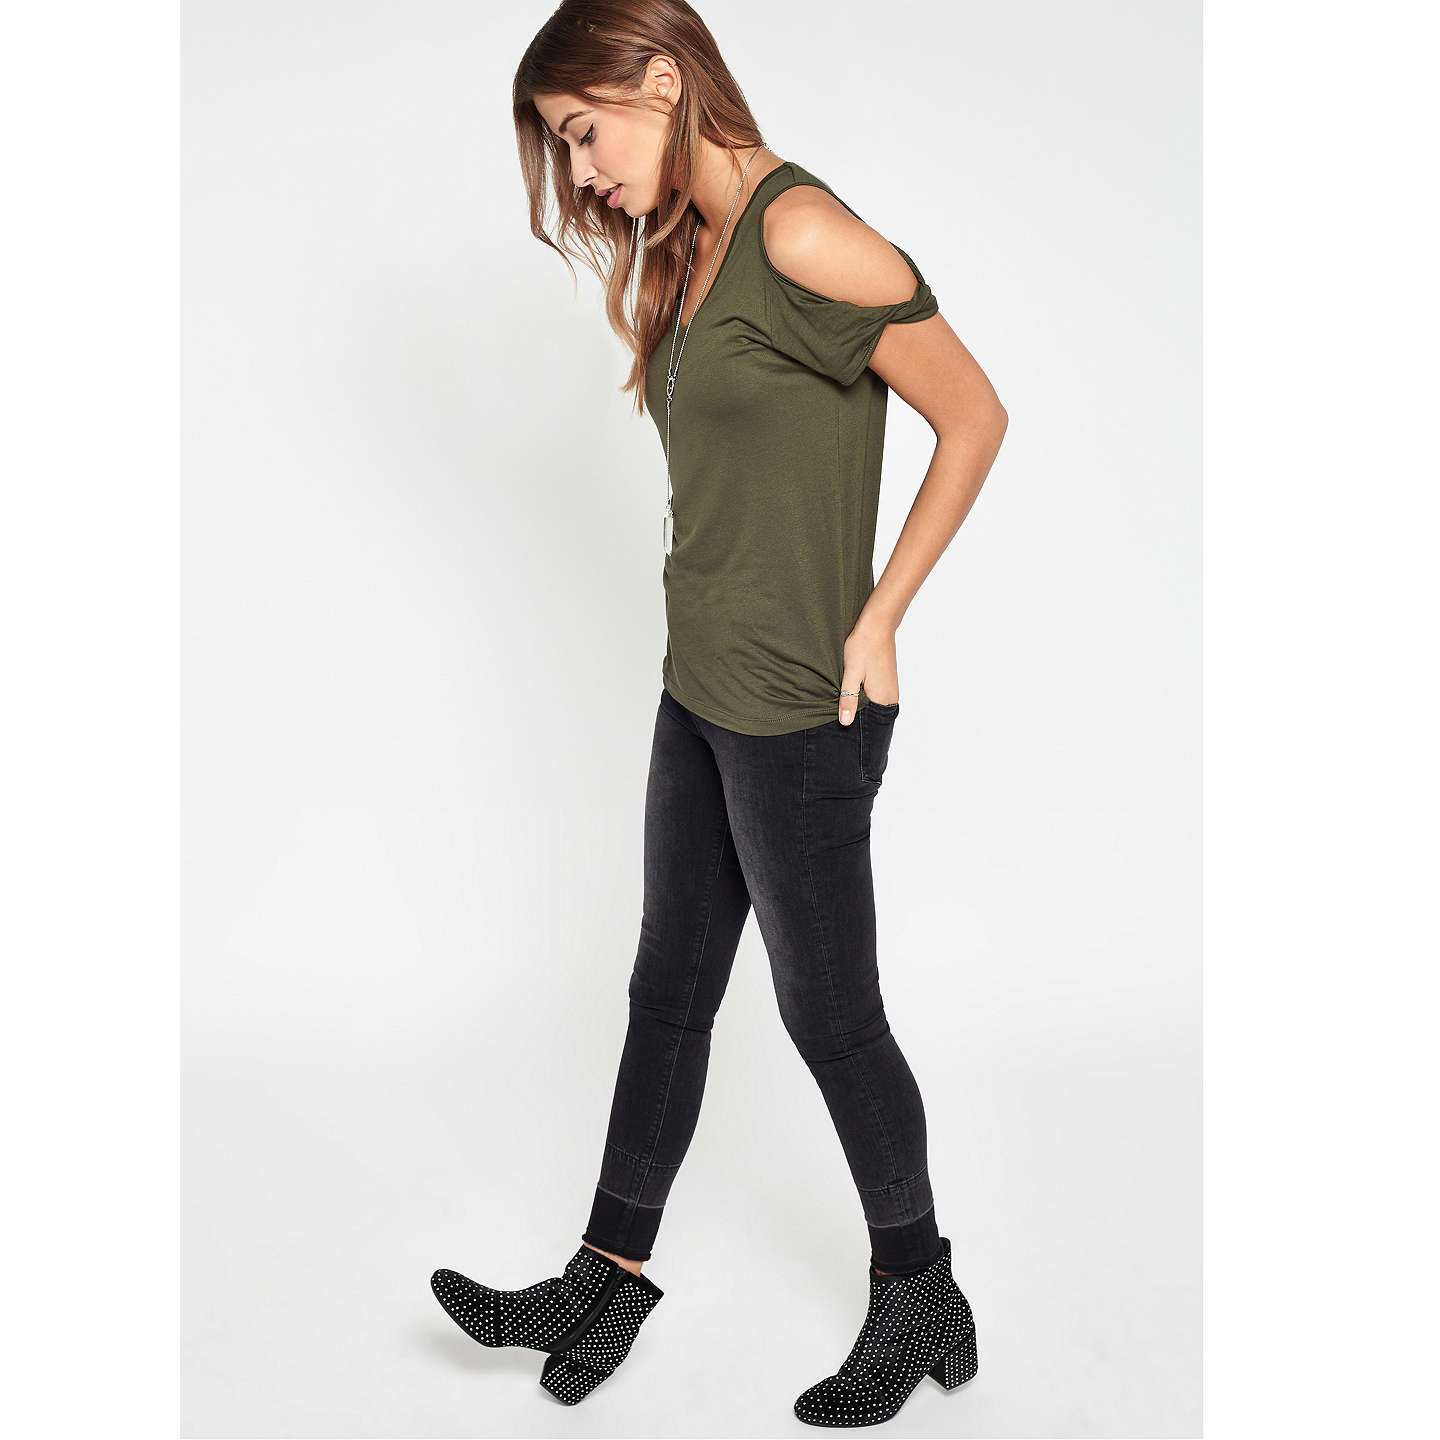 BuyMiss Selfridge Cold Shoulder T-Shirt, Khaki, 6 Online at johnlewis.com